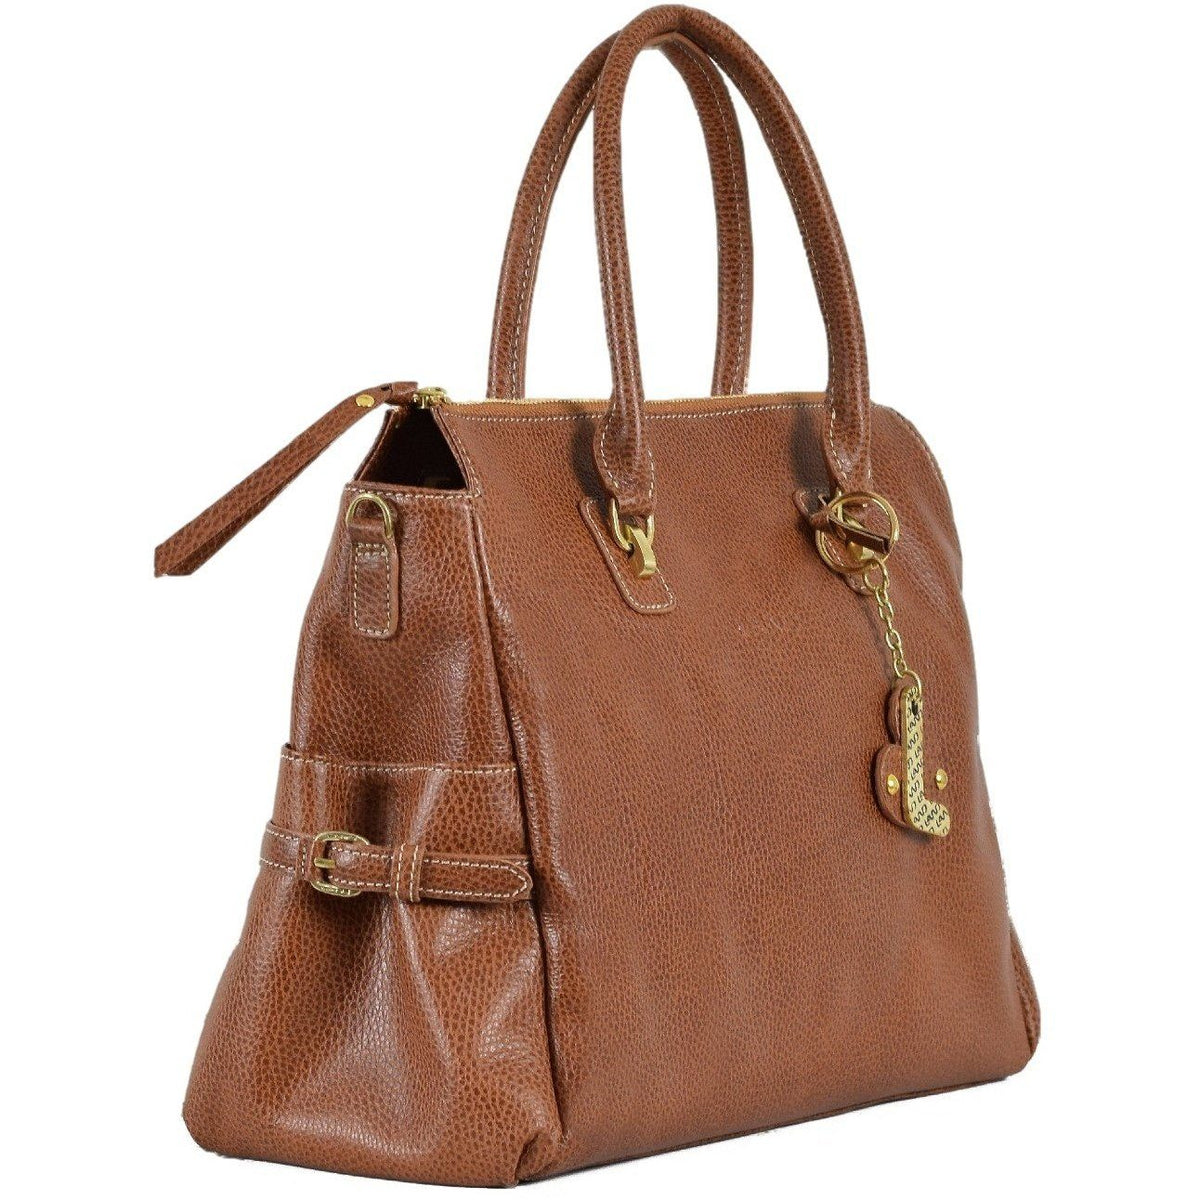 Bisenzio Victoria Tote, Handbag | LAND Leather